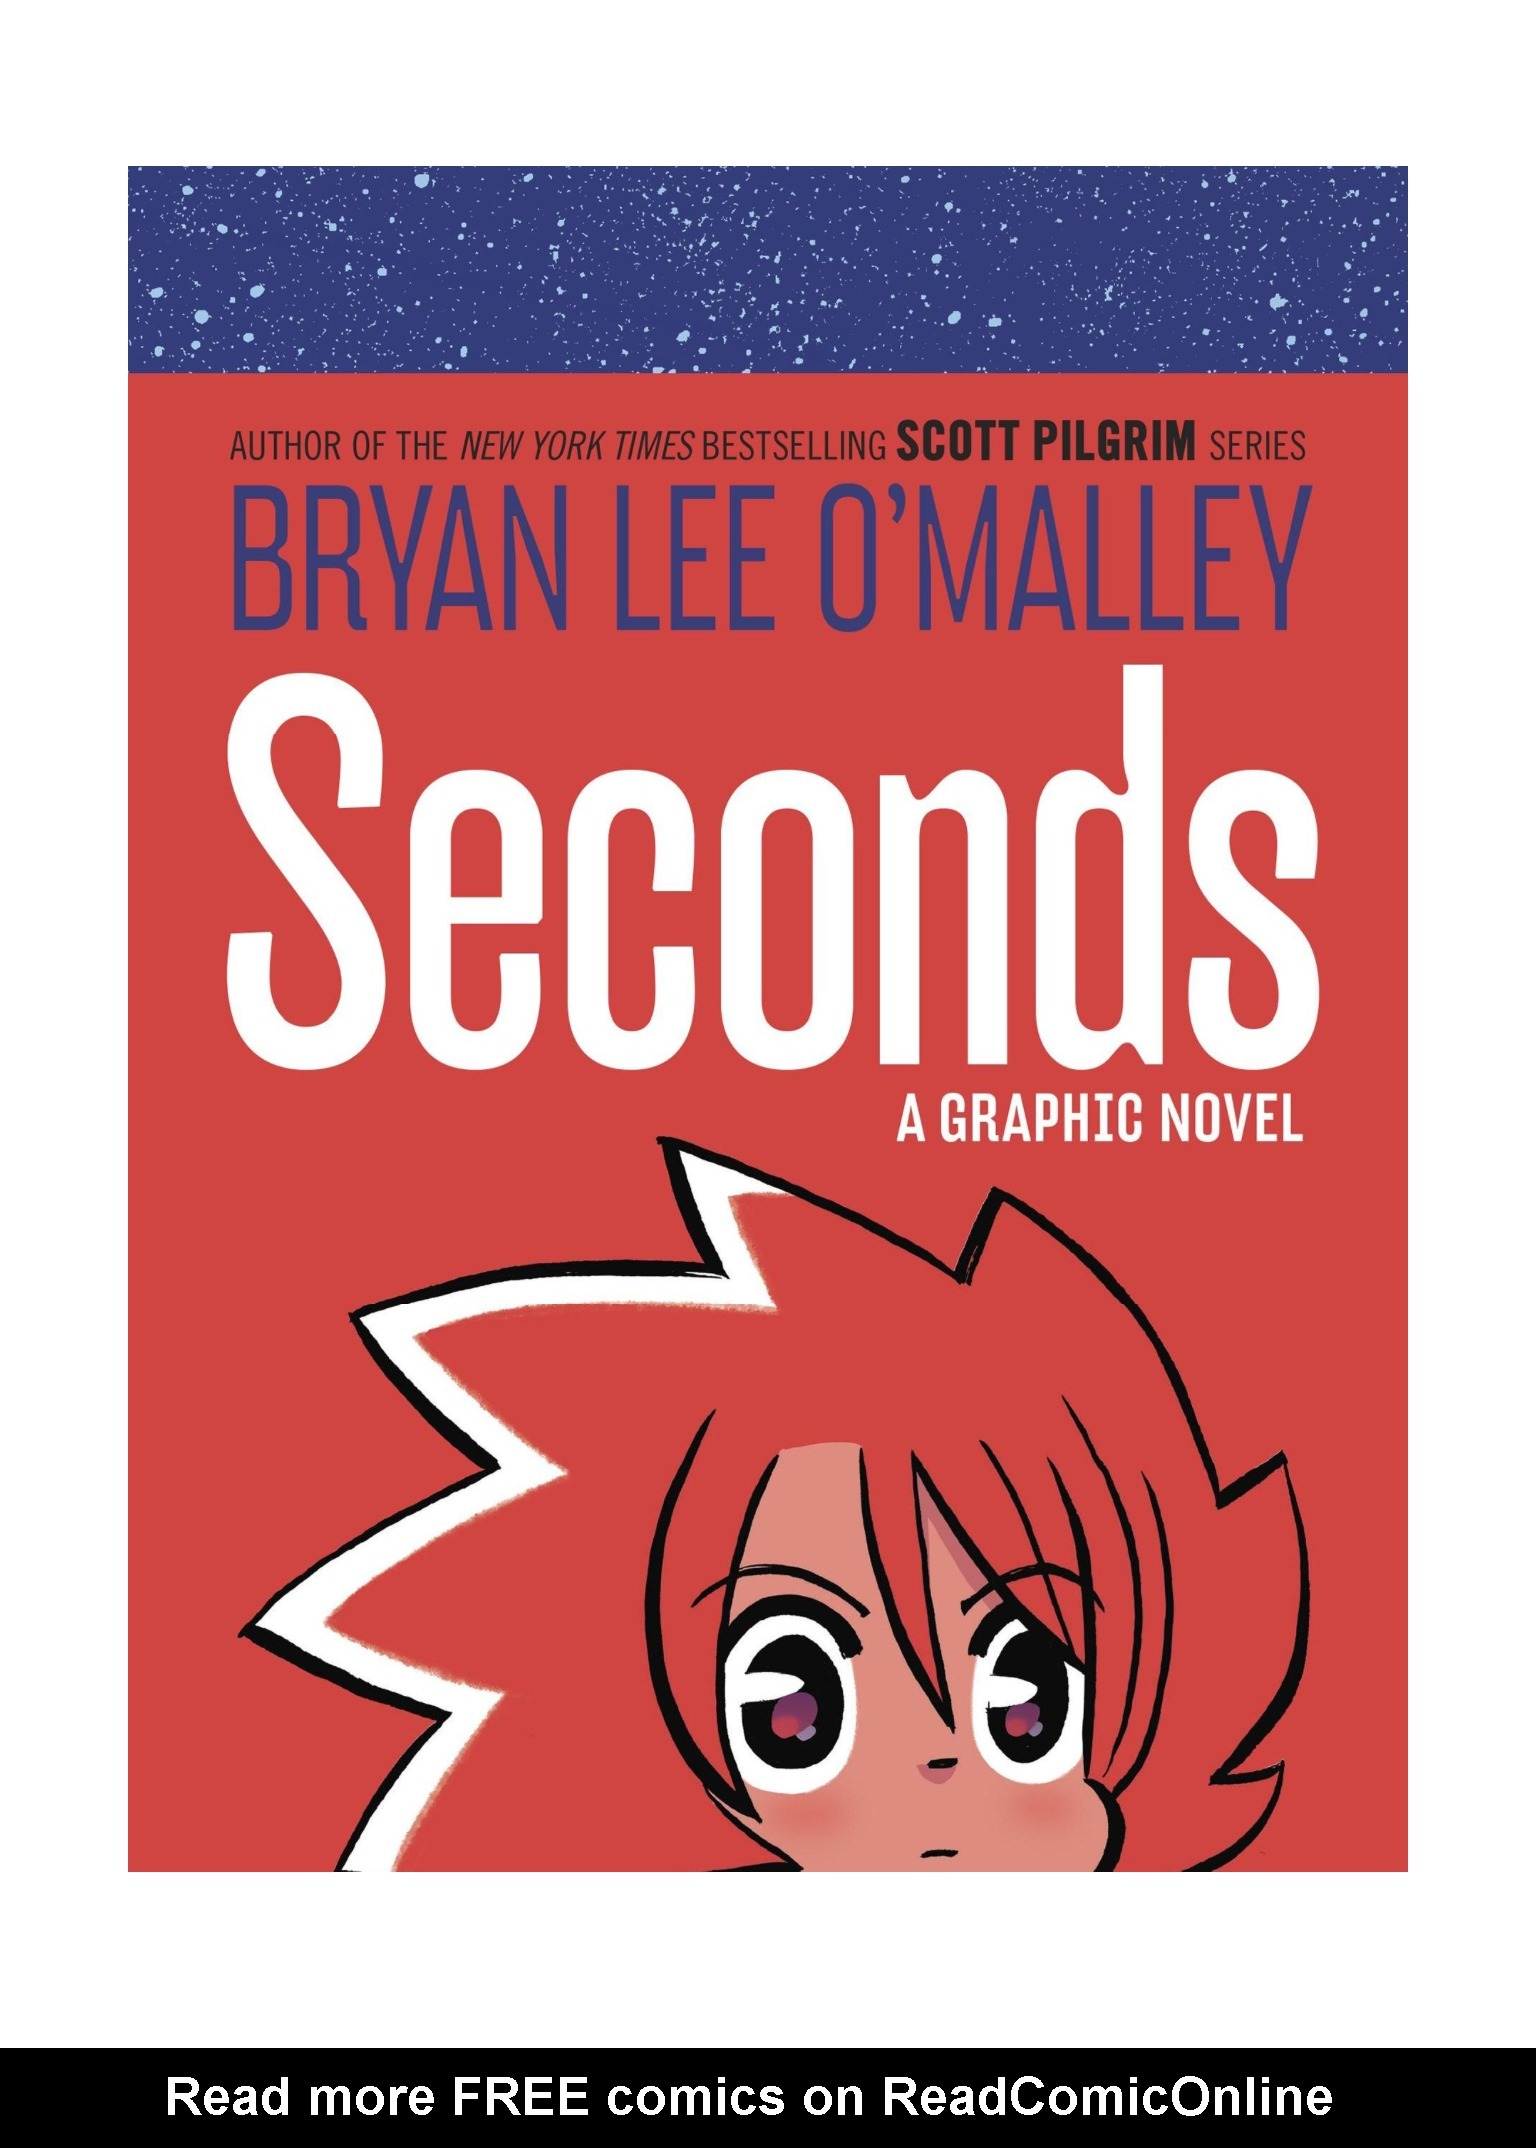 Read online Seconds comic -  Issue # Full - 2